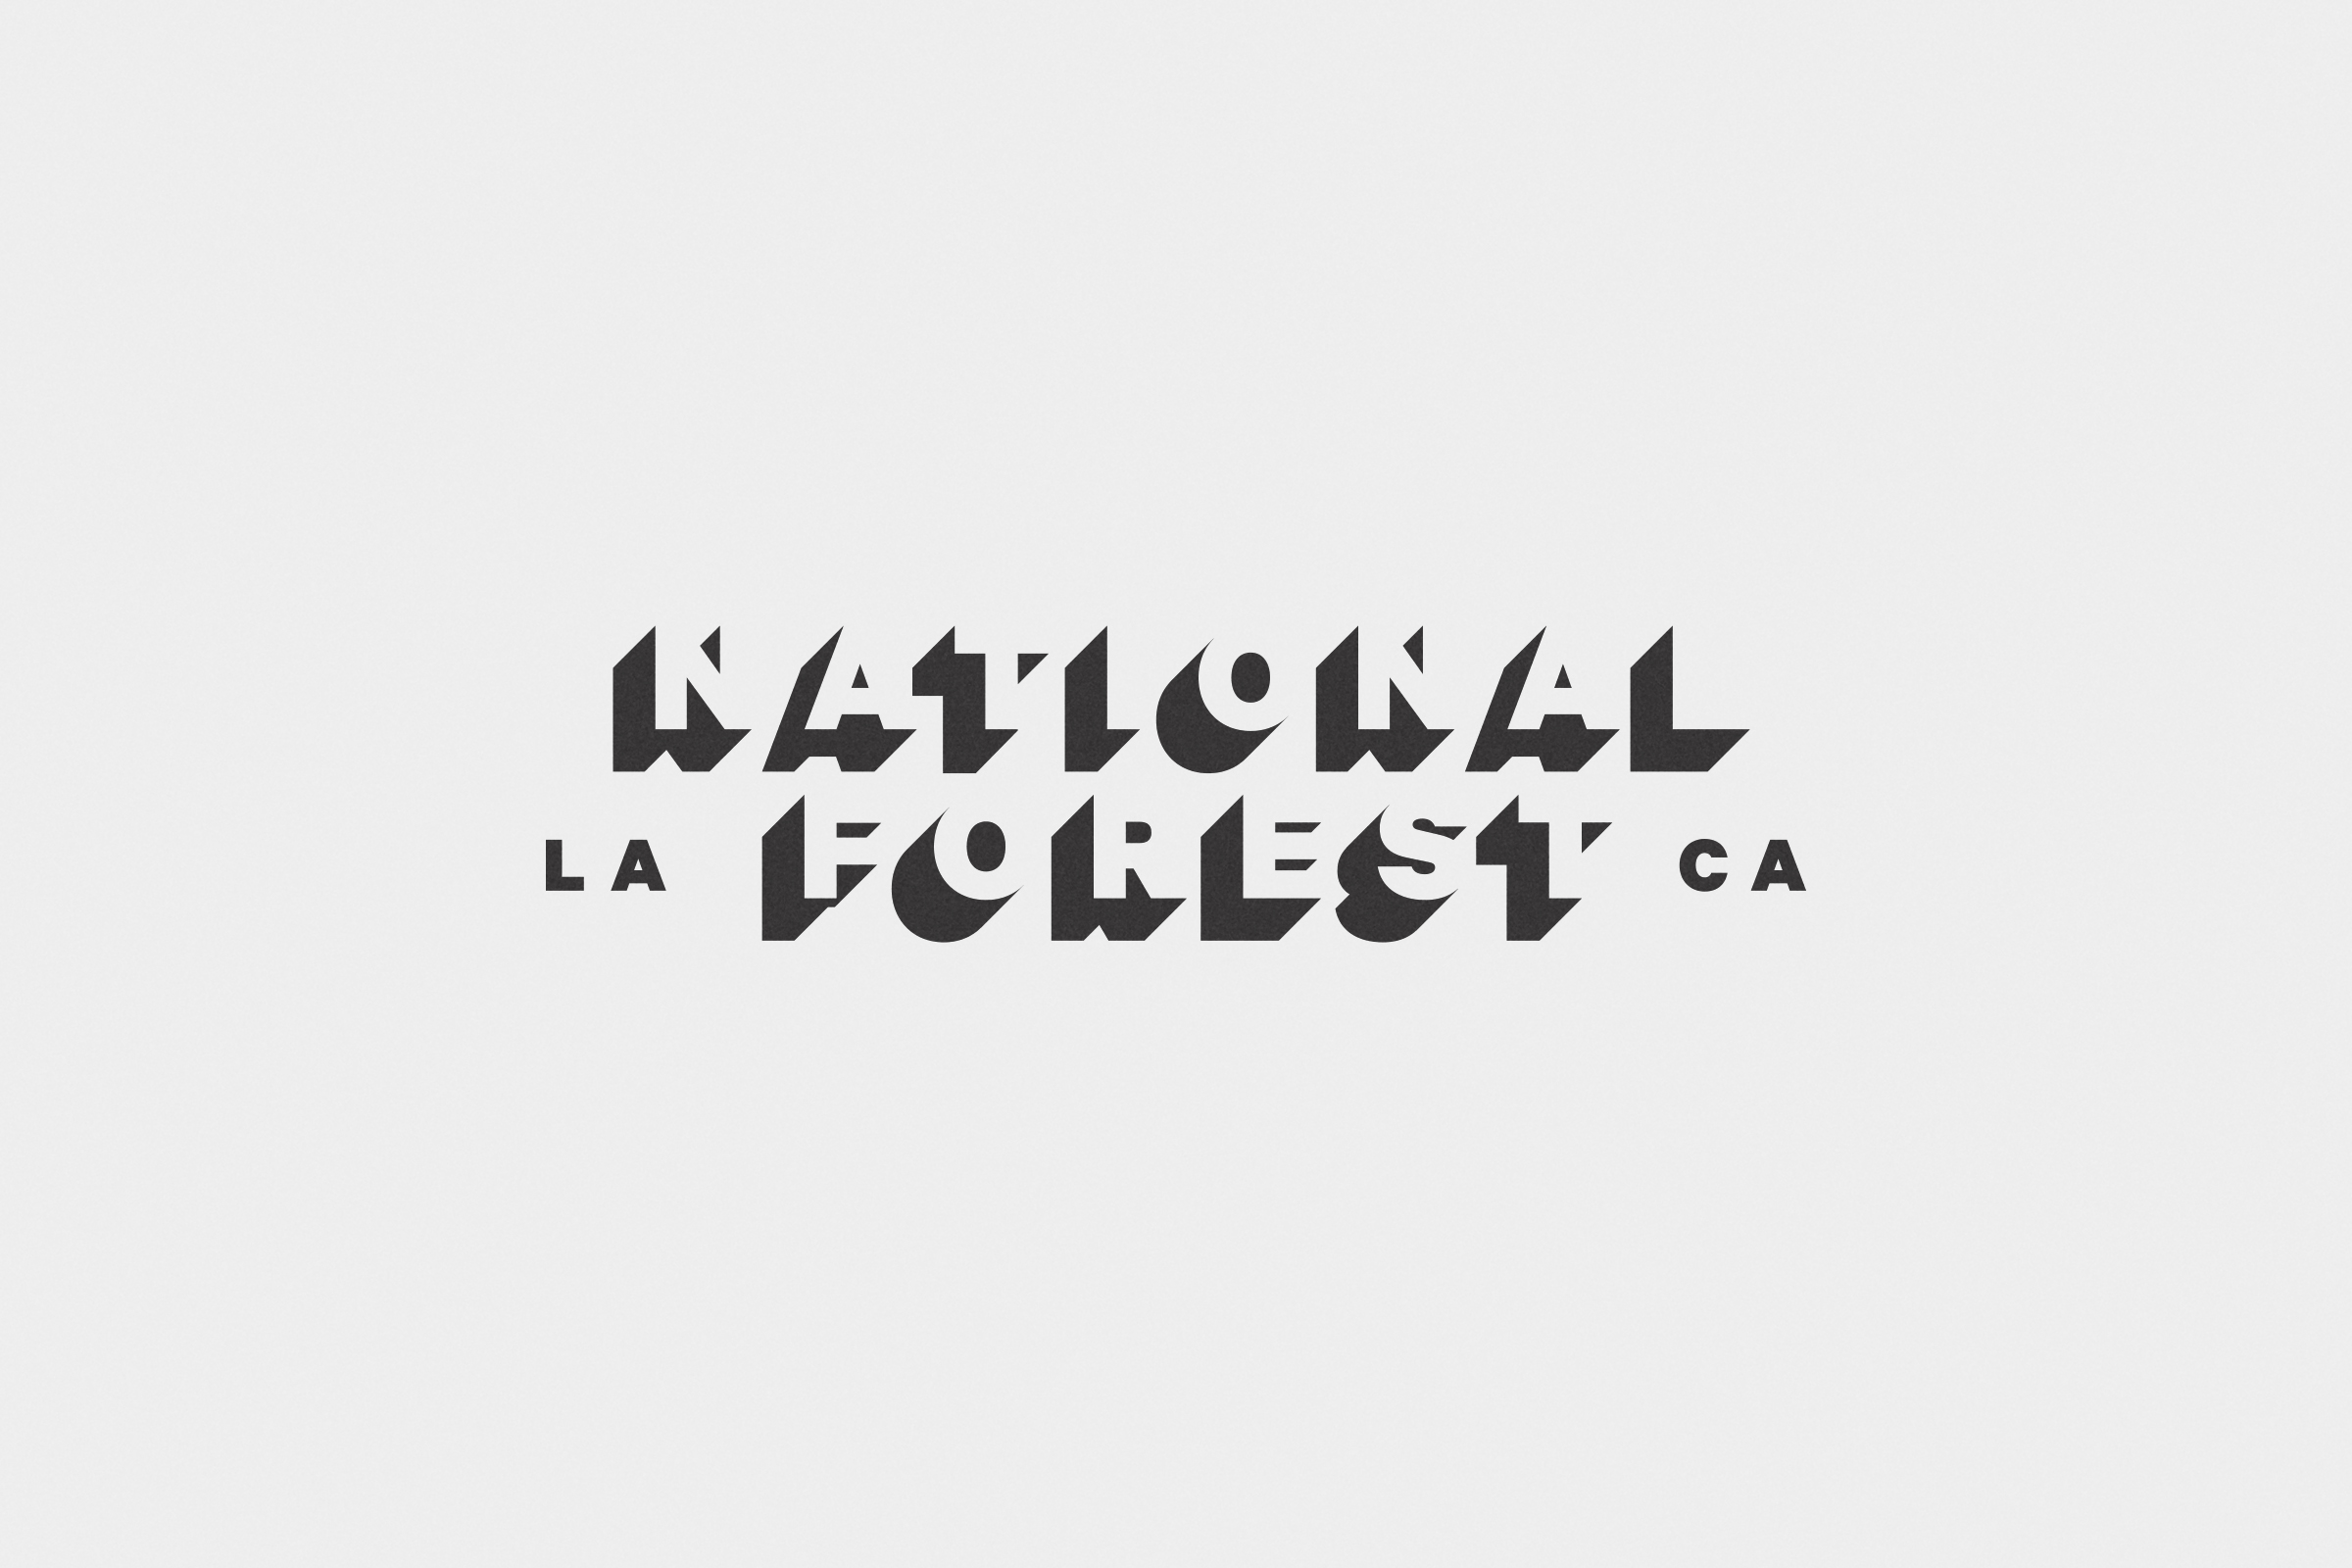 TBS_LogosAndMarks_NationalForest_1